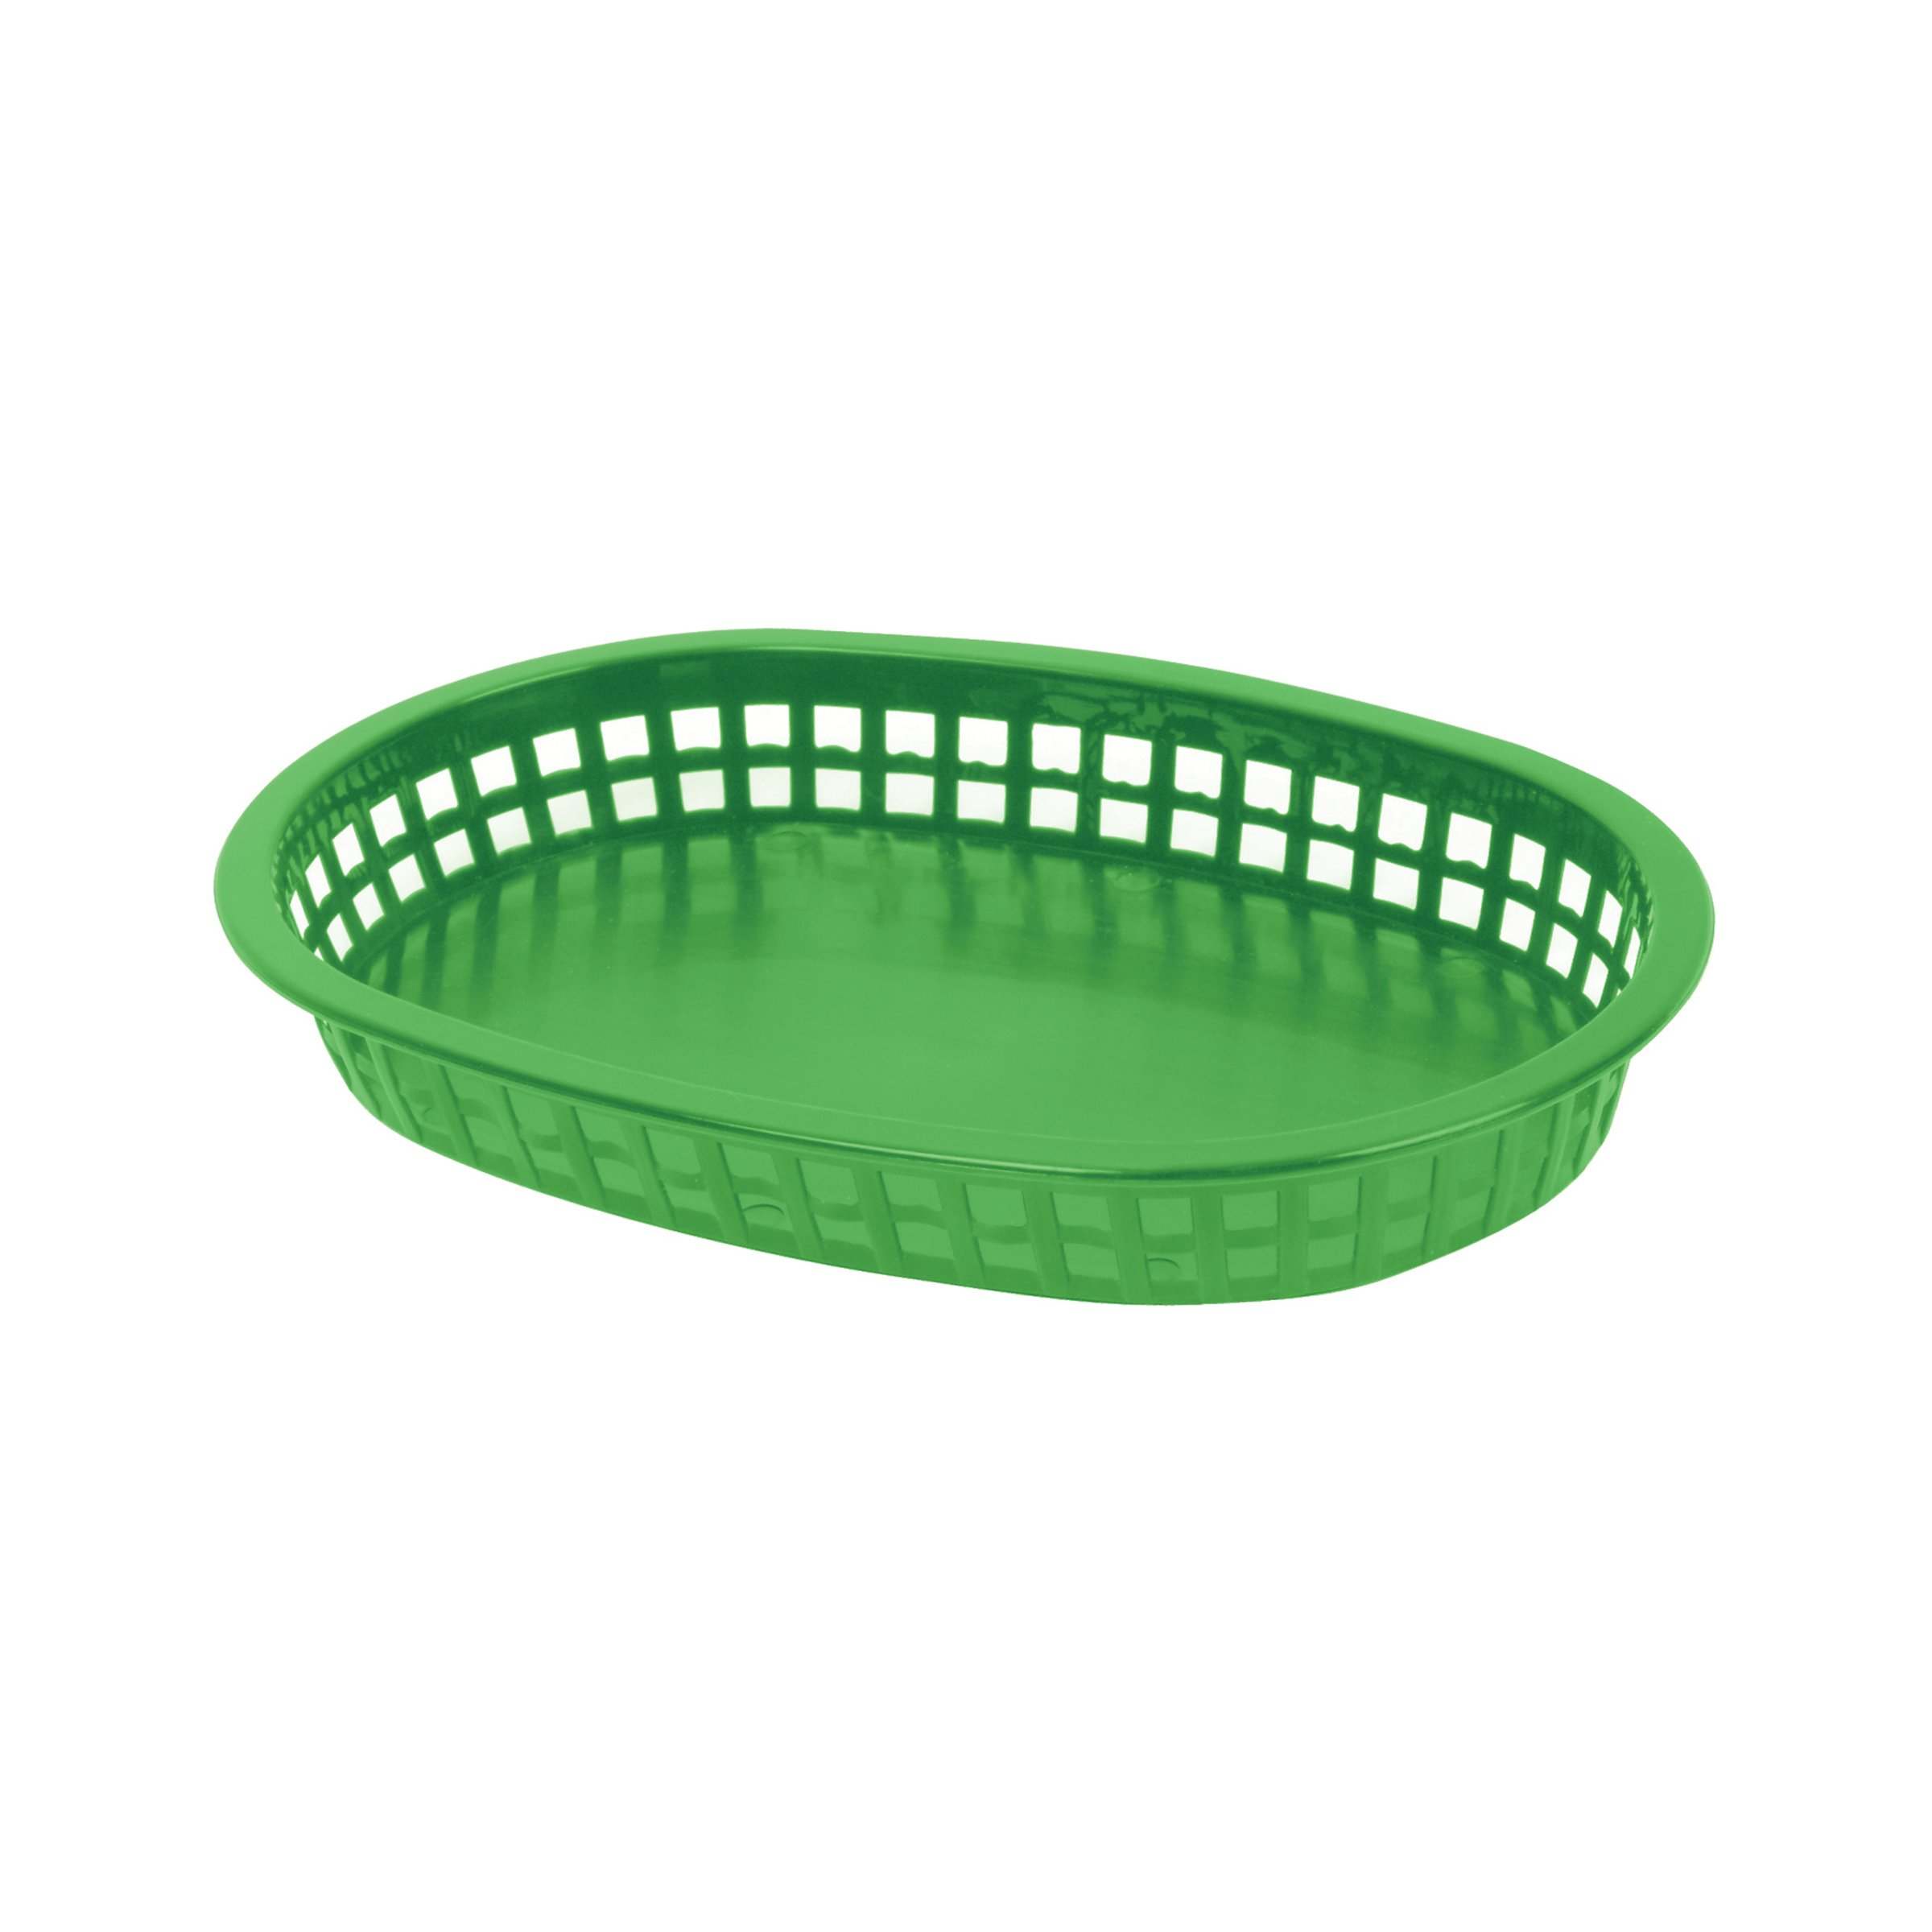 Excellanté 12 Piece 10 3/4'' Oblong Basket, Green